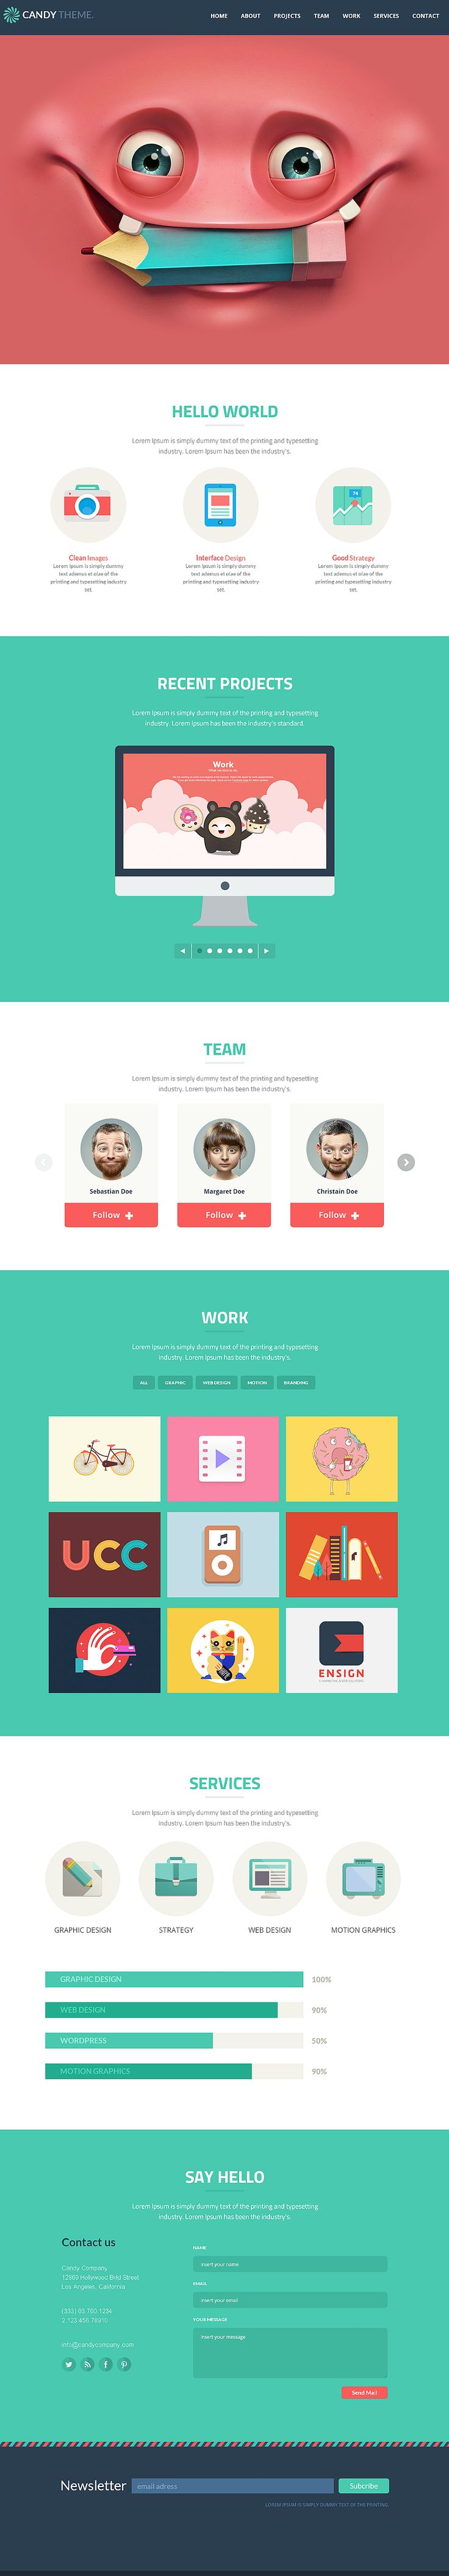 25 Flat Design Inspiration For Designers Designbump Web Design Game Design Tendances Web